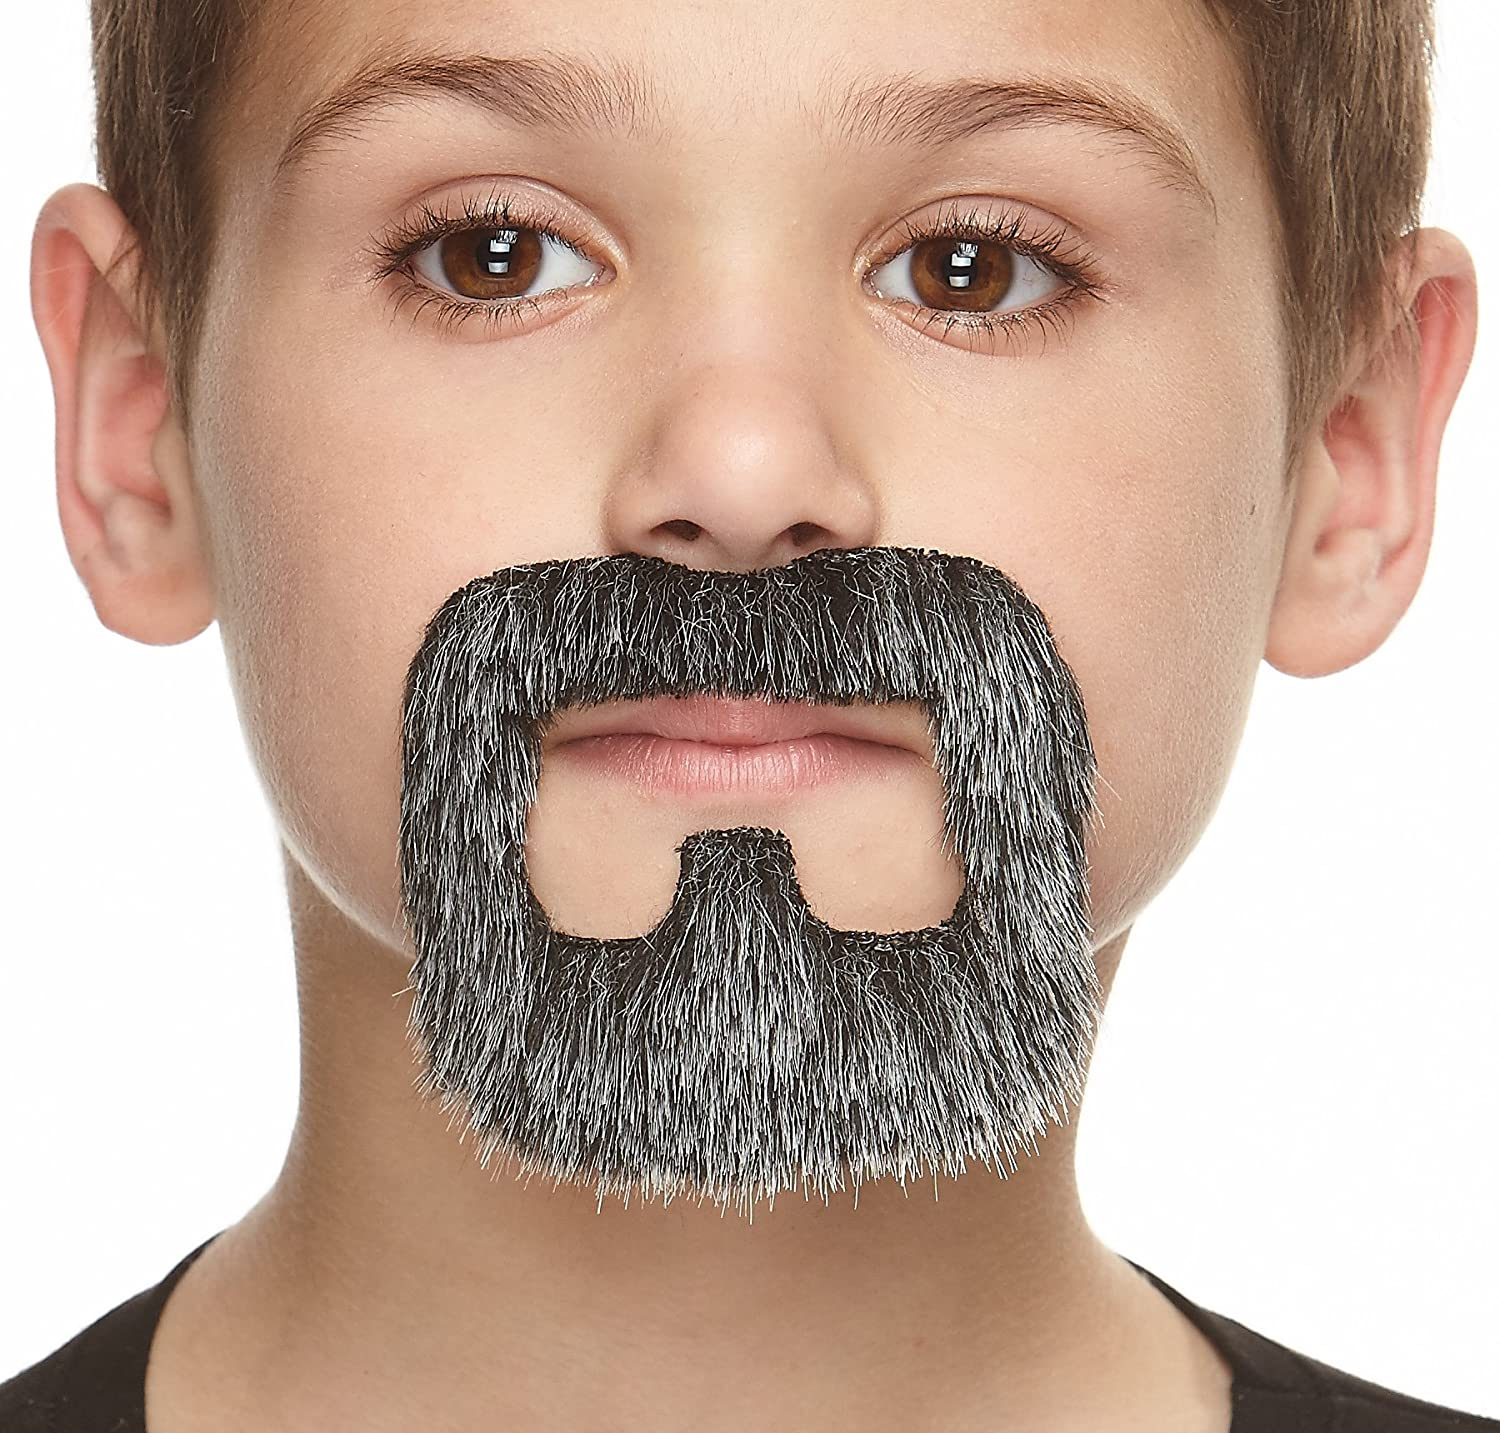 Children Kids Fun Play Fake Costume NEW Halloween Costume fake mustache